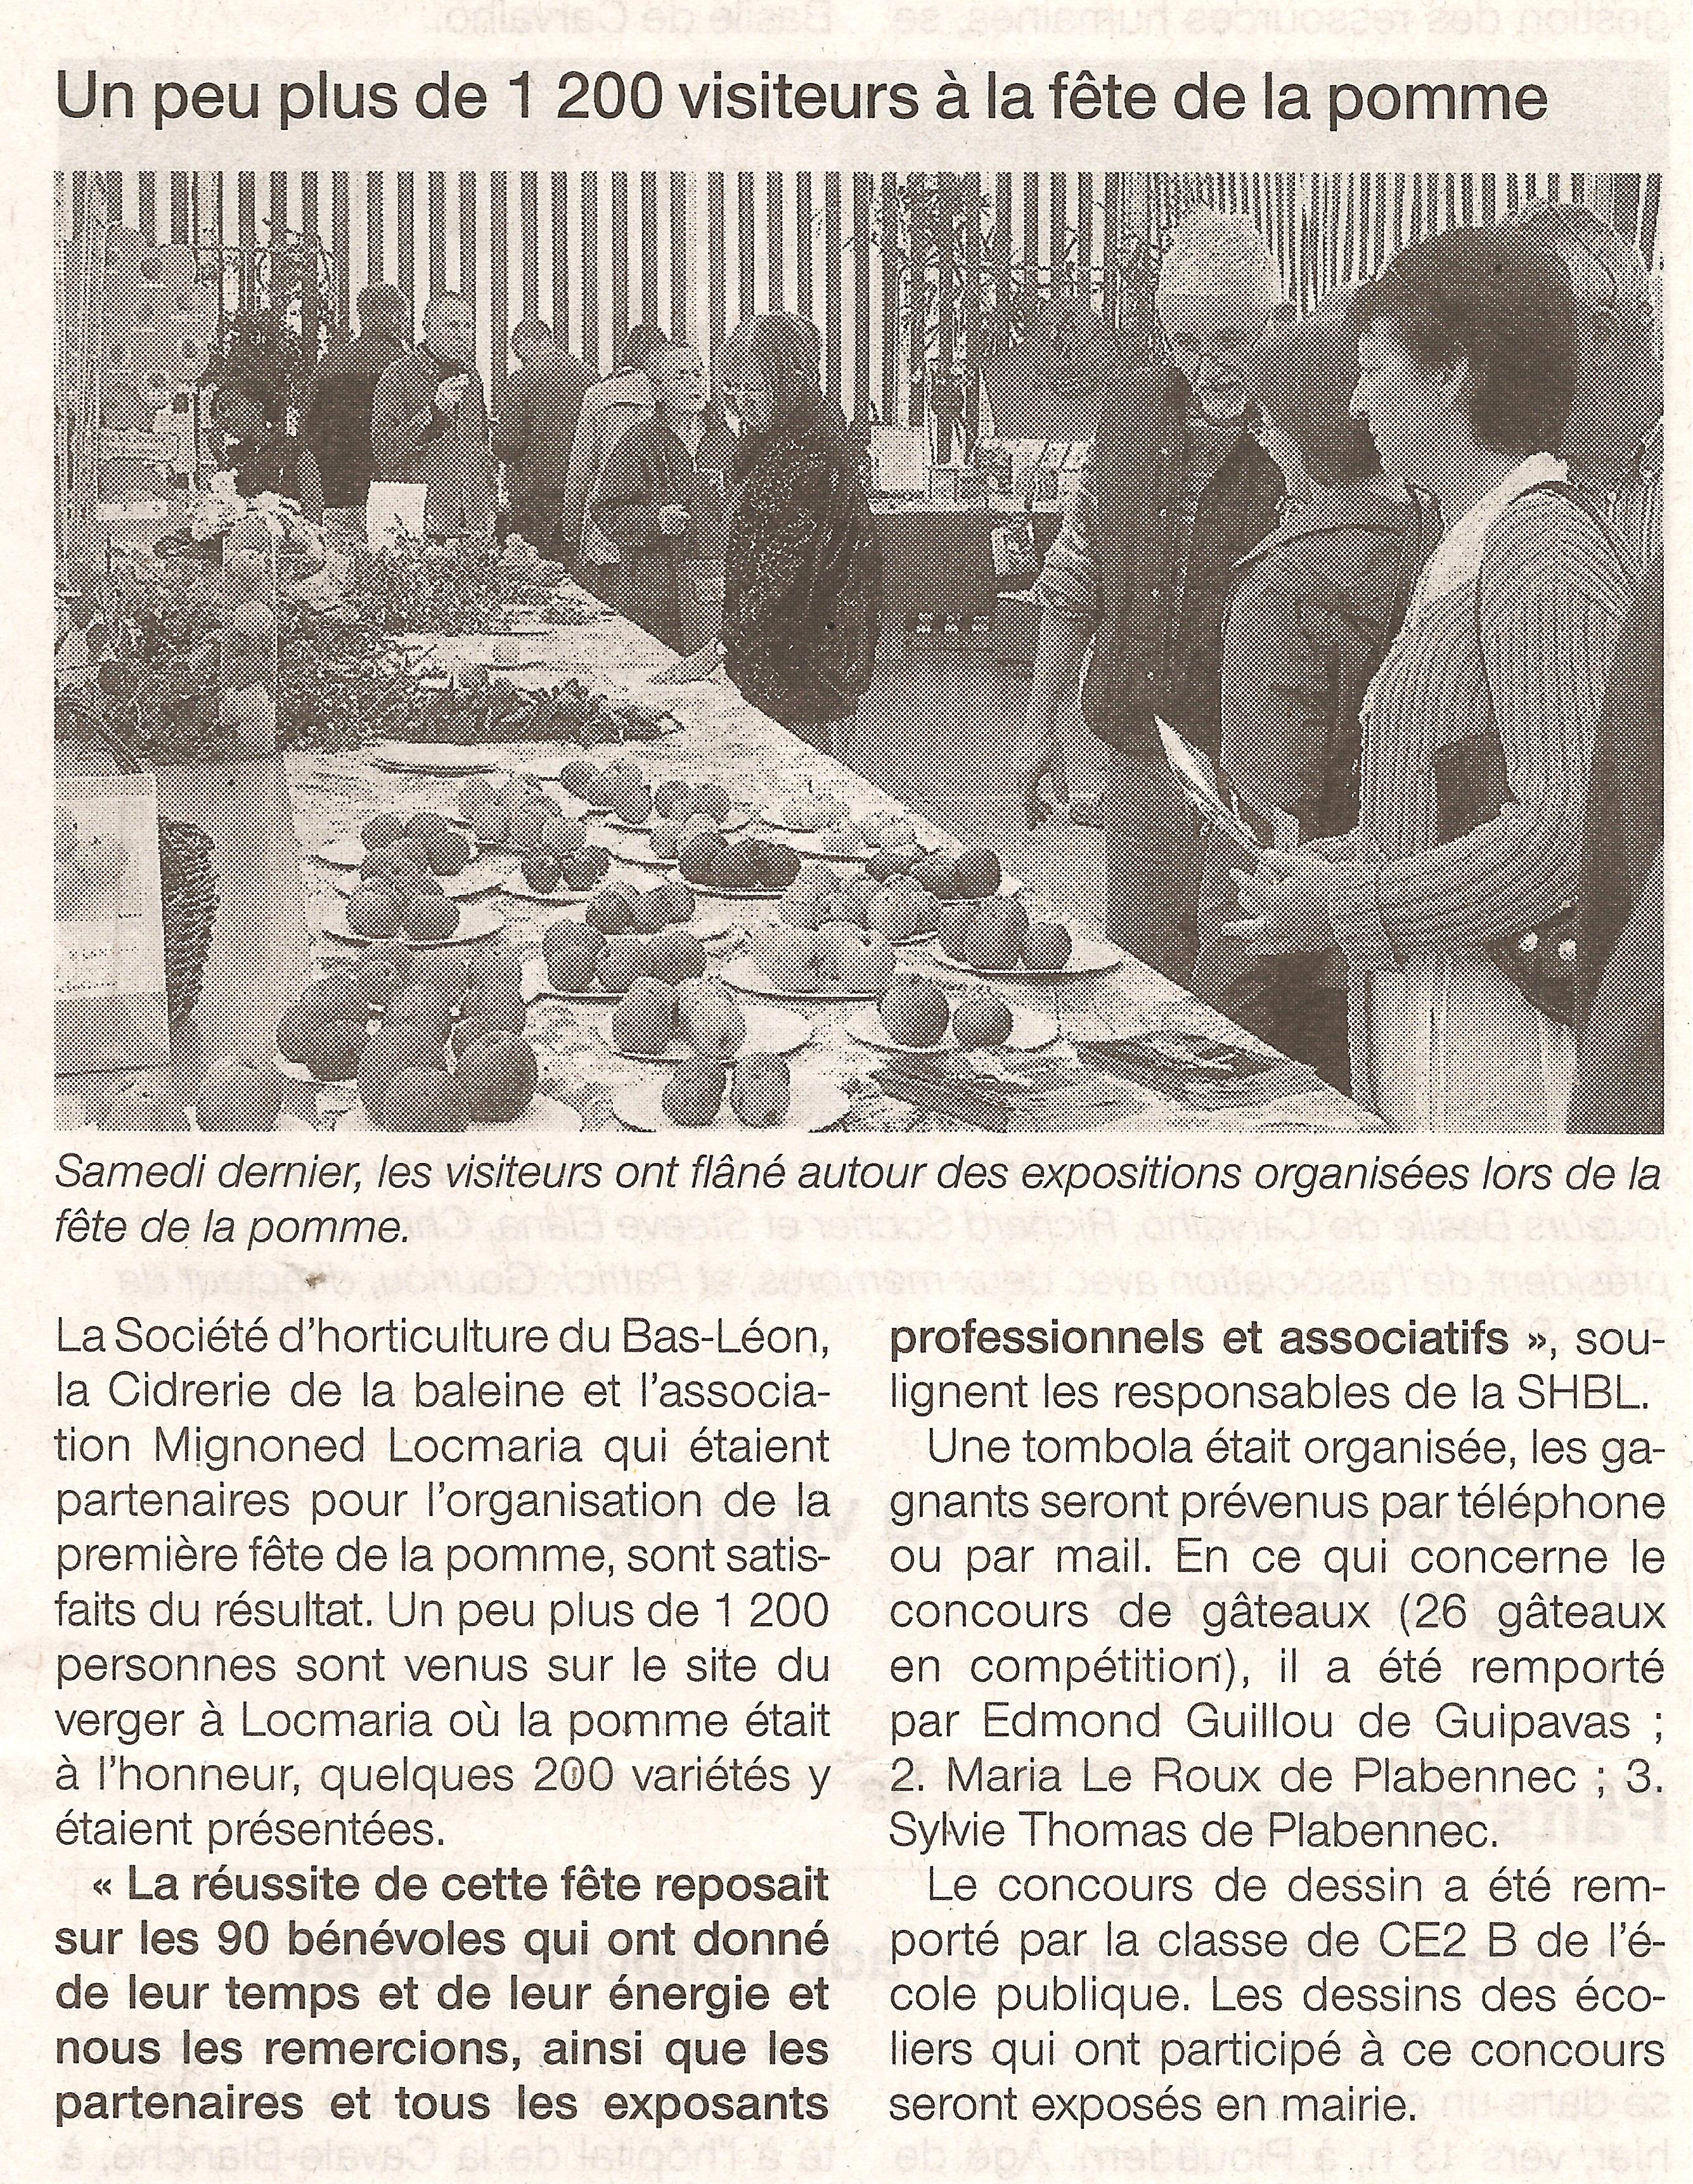 2009 10 15 Ouest France